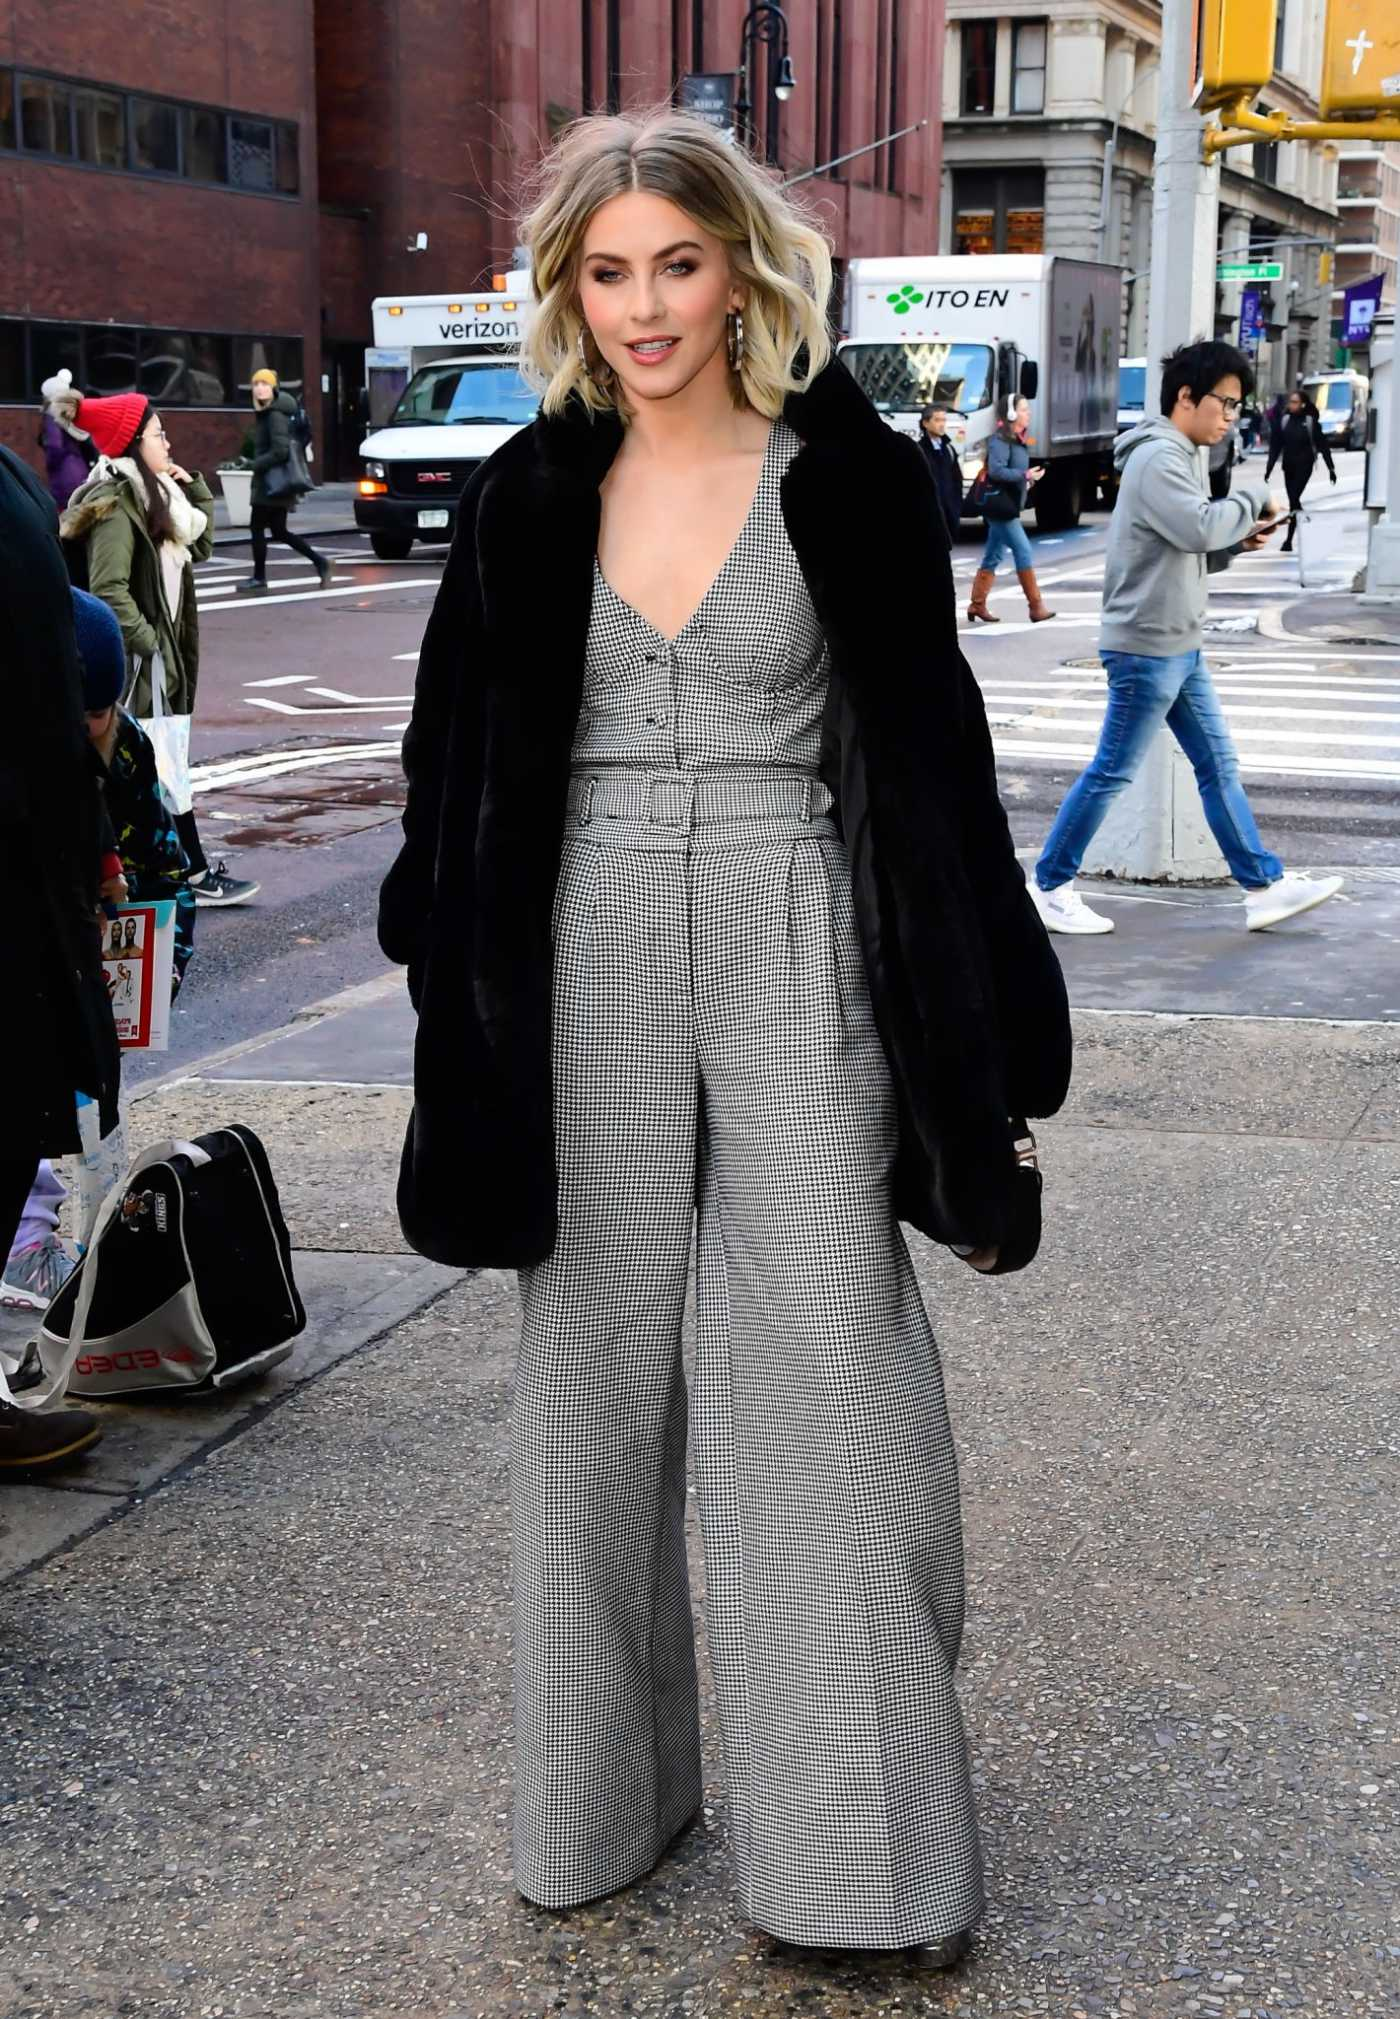 Julianne Hough in a Black Fur Coat Was Seen Out in New York City 12/03/2019